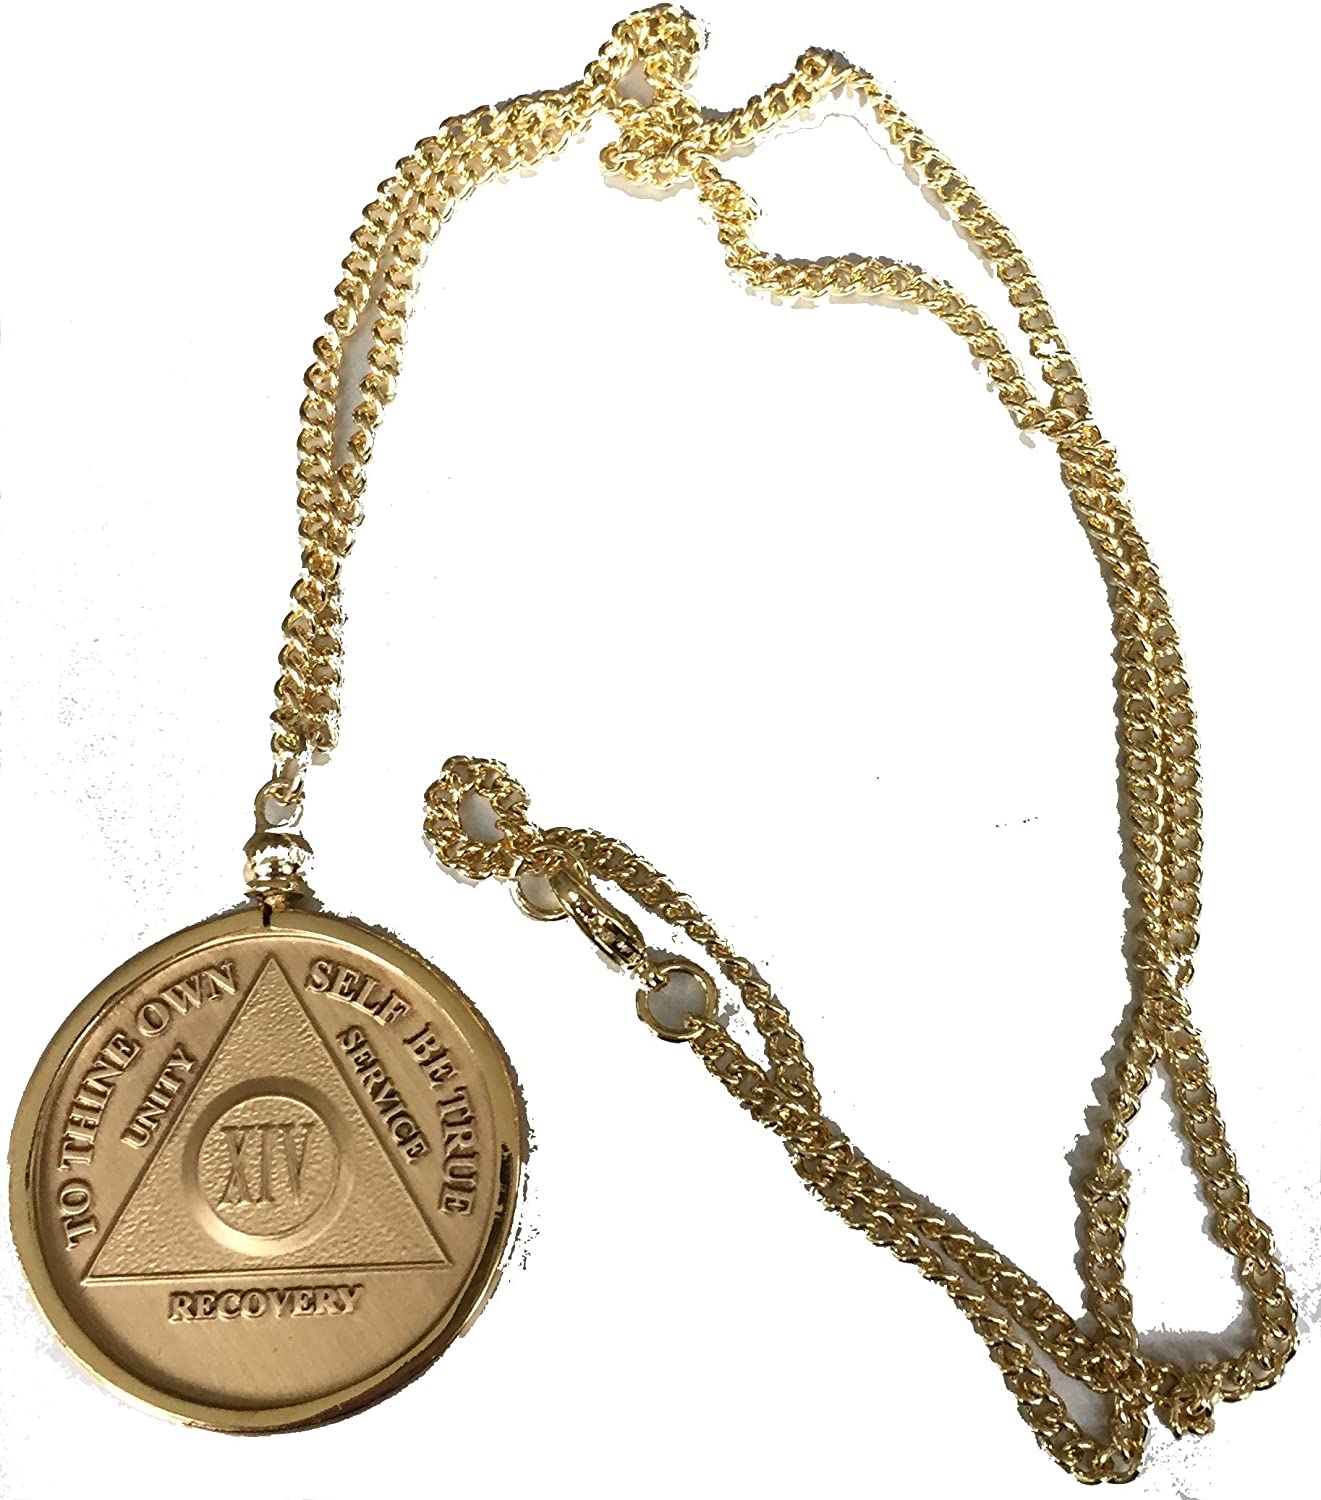 en single chain us for online singlemedusanecklace necklace men medallion medusa store versace necklaces gold